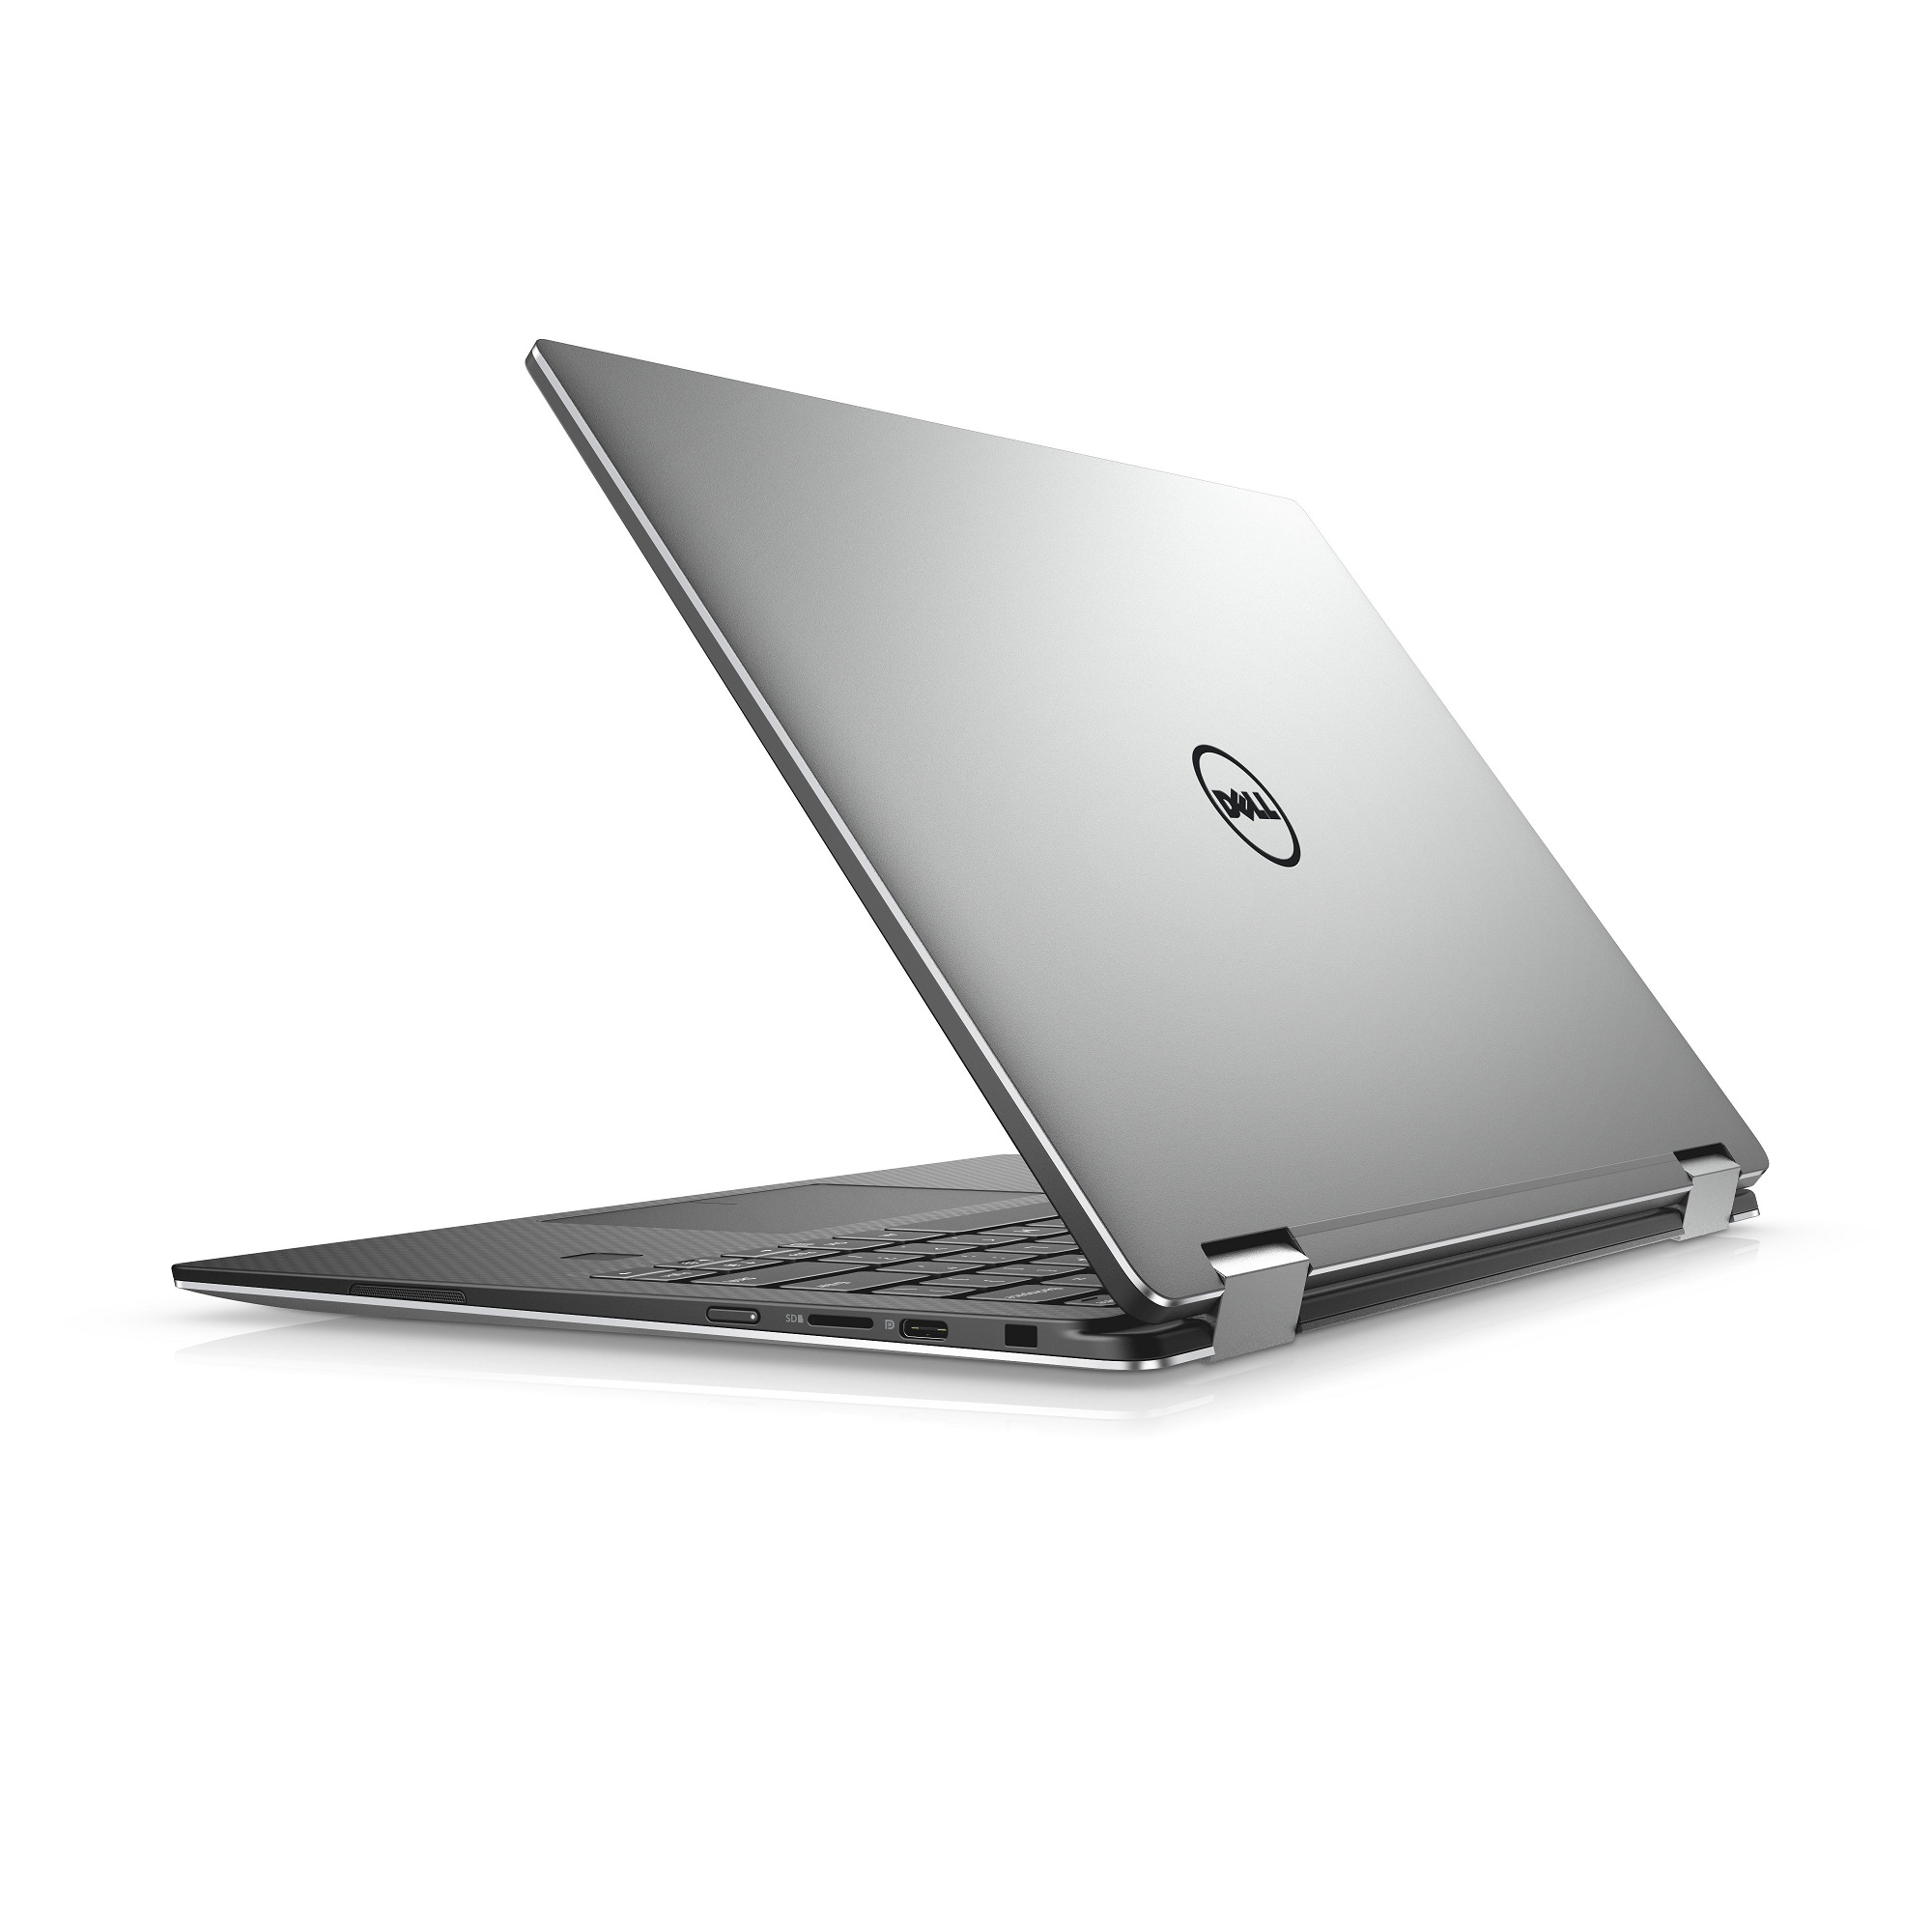 "DELL Ultrabook XPS 13 (9365)/i7-7Y57/16GB/512GB SSD/Intel HD/13.3"" QHD Touch/Win 10 Pro/Black"